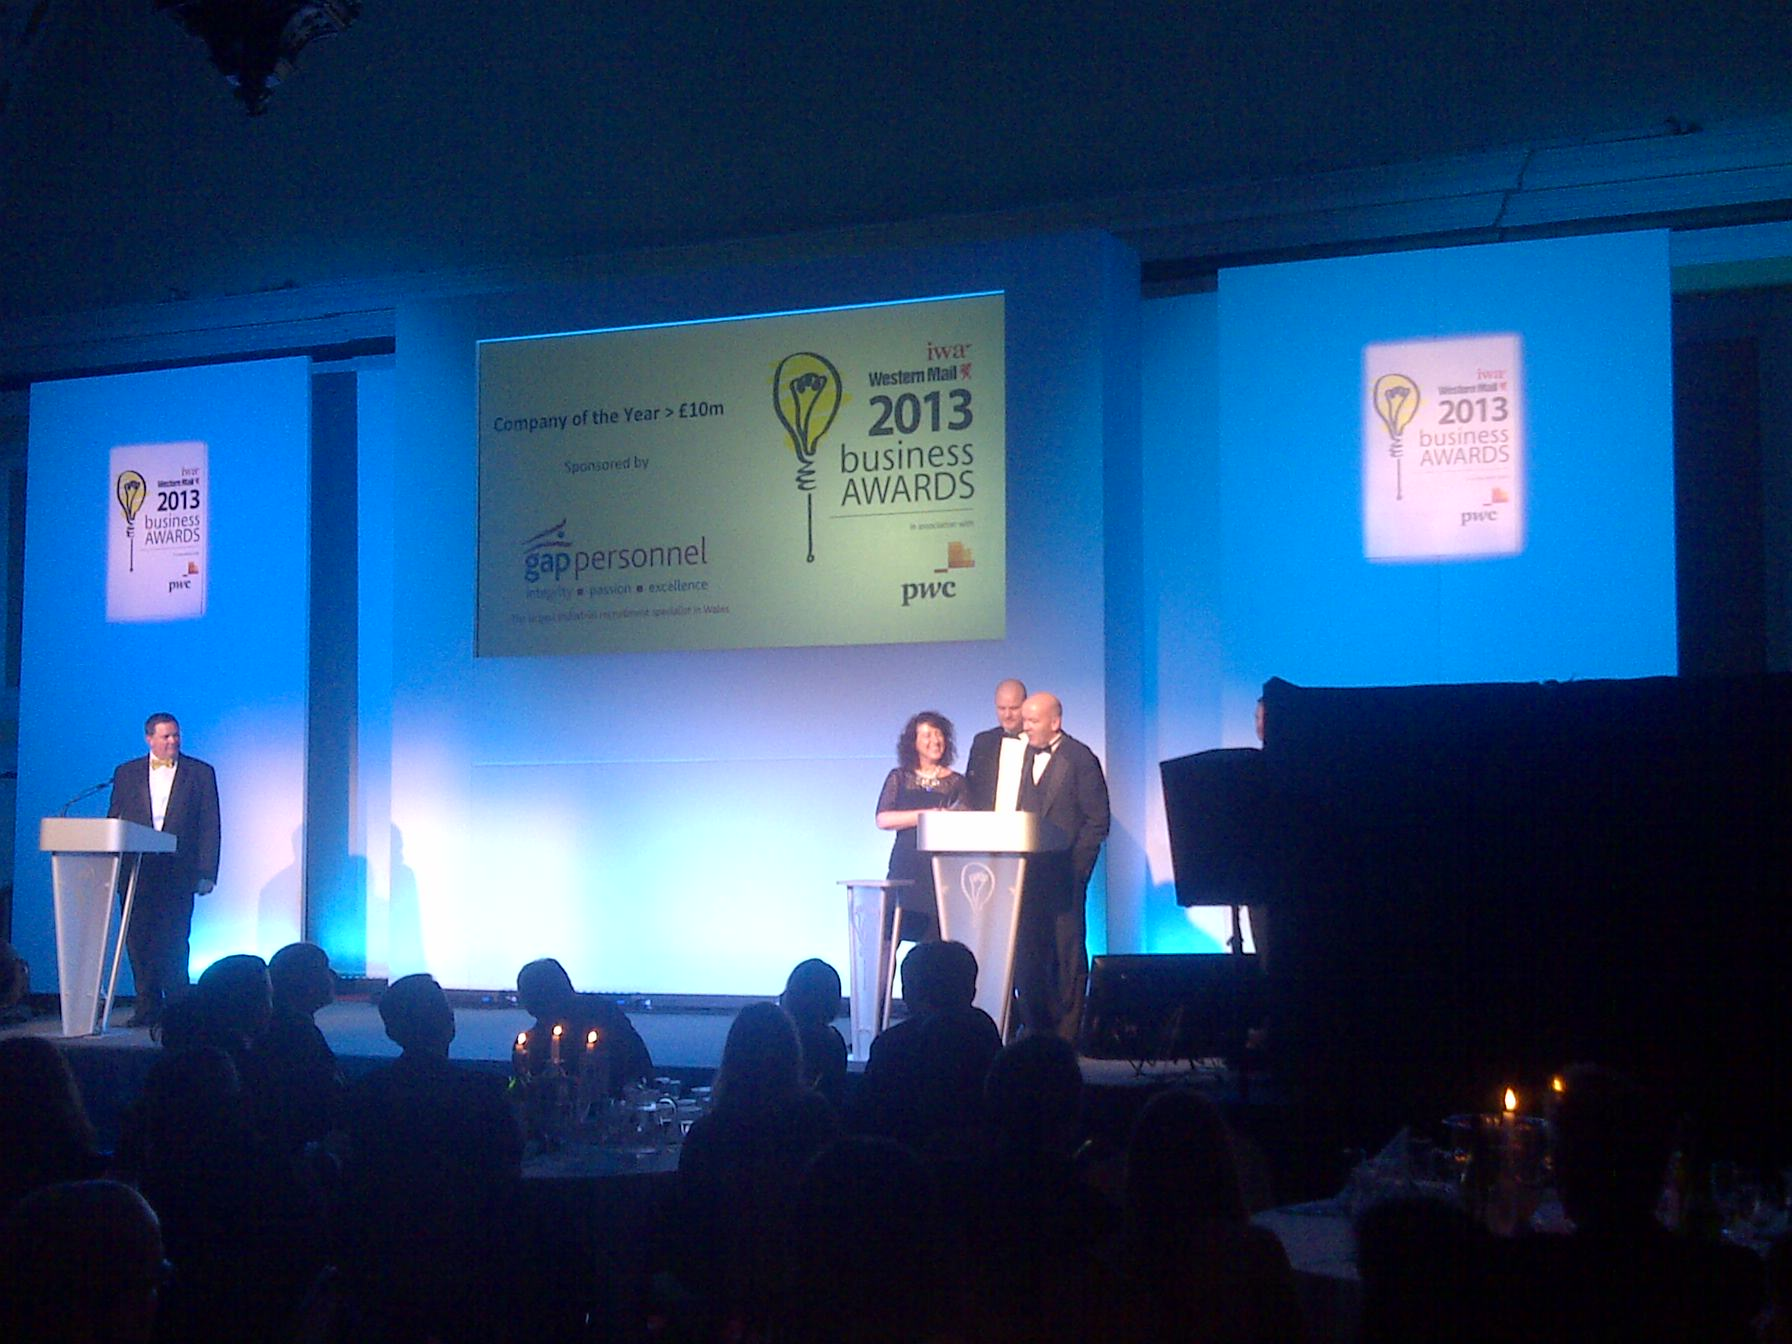 Invacare named Company of the Year at IWA Business Awards 2013